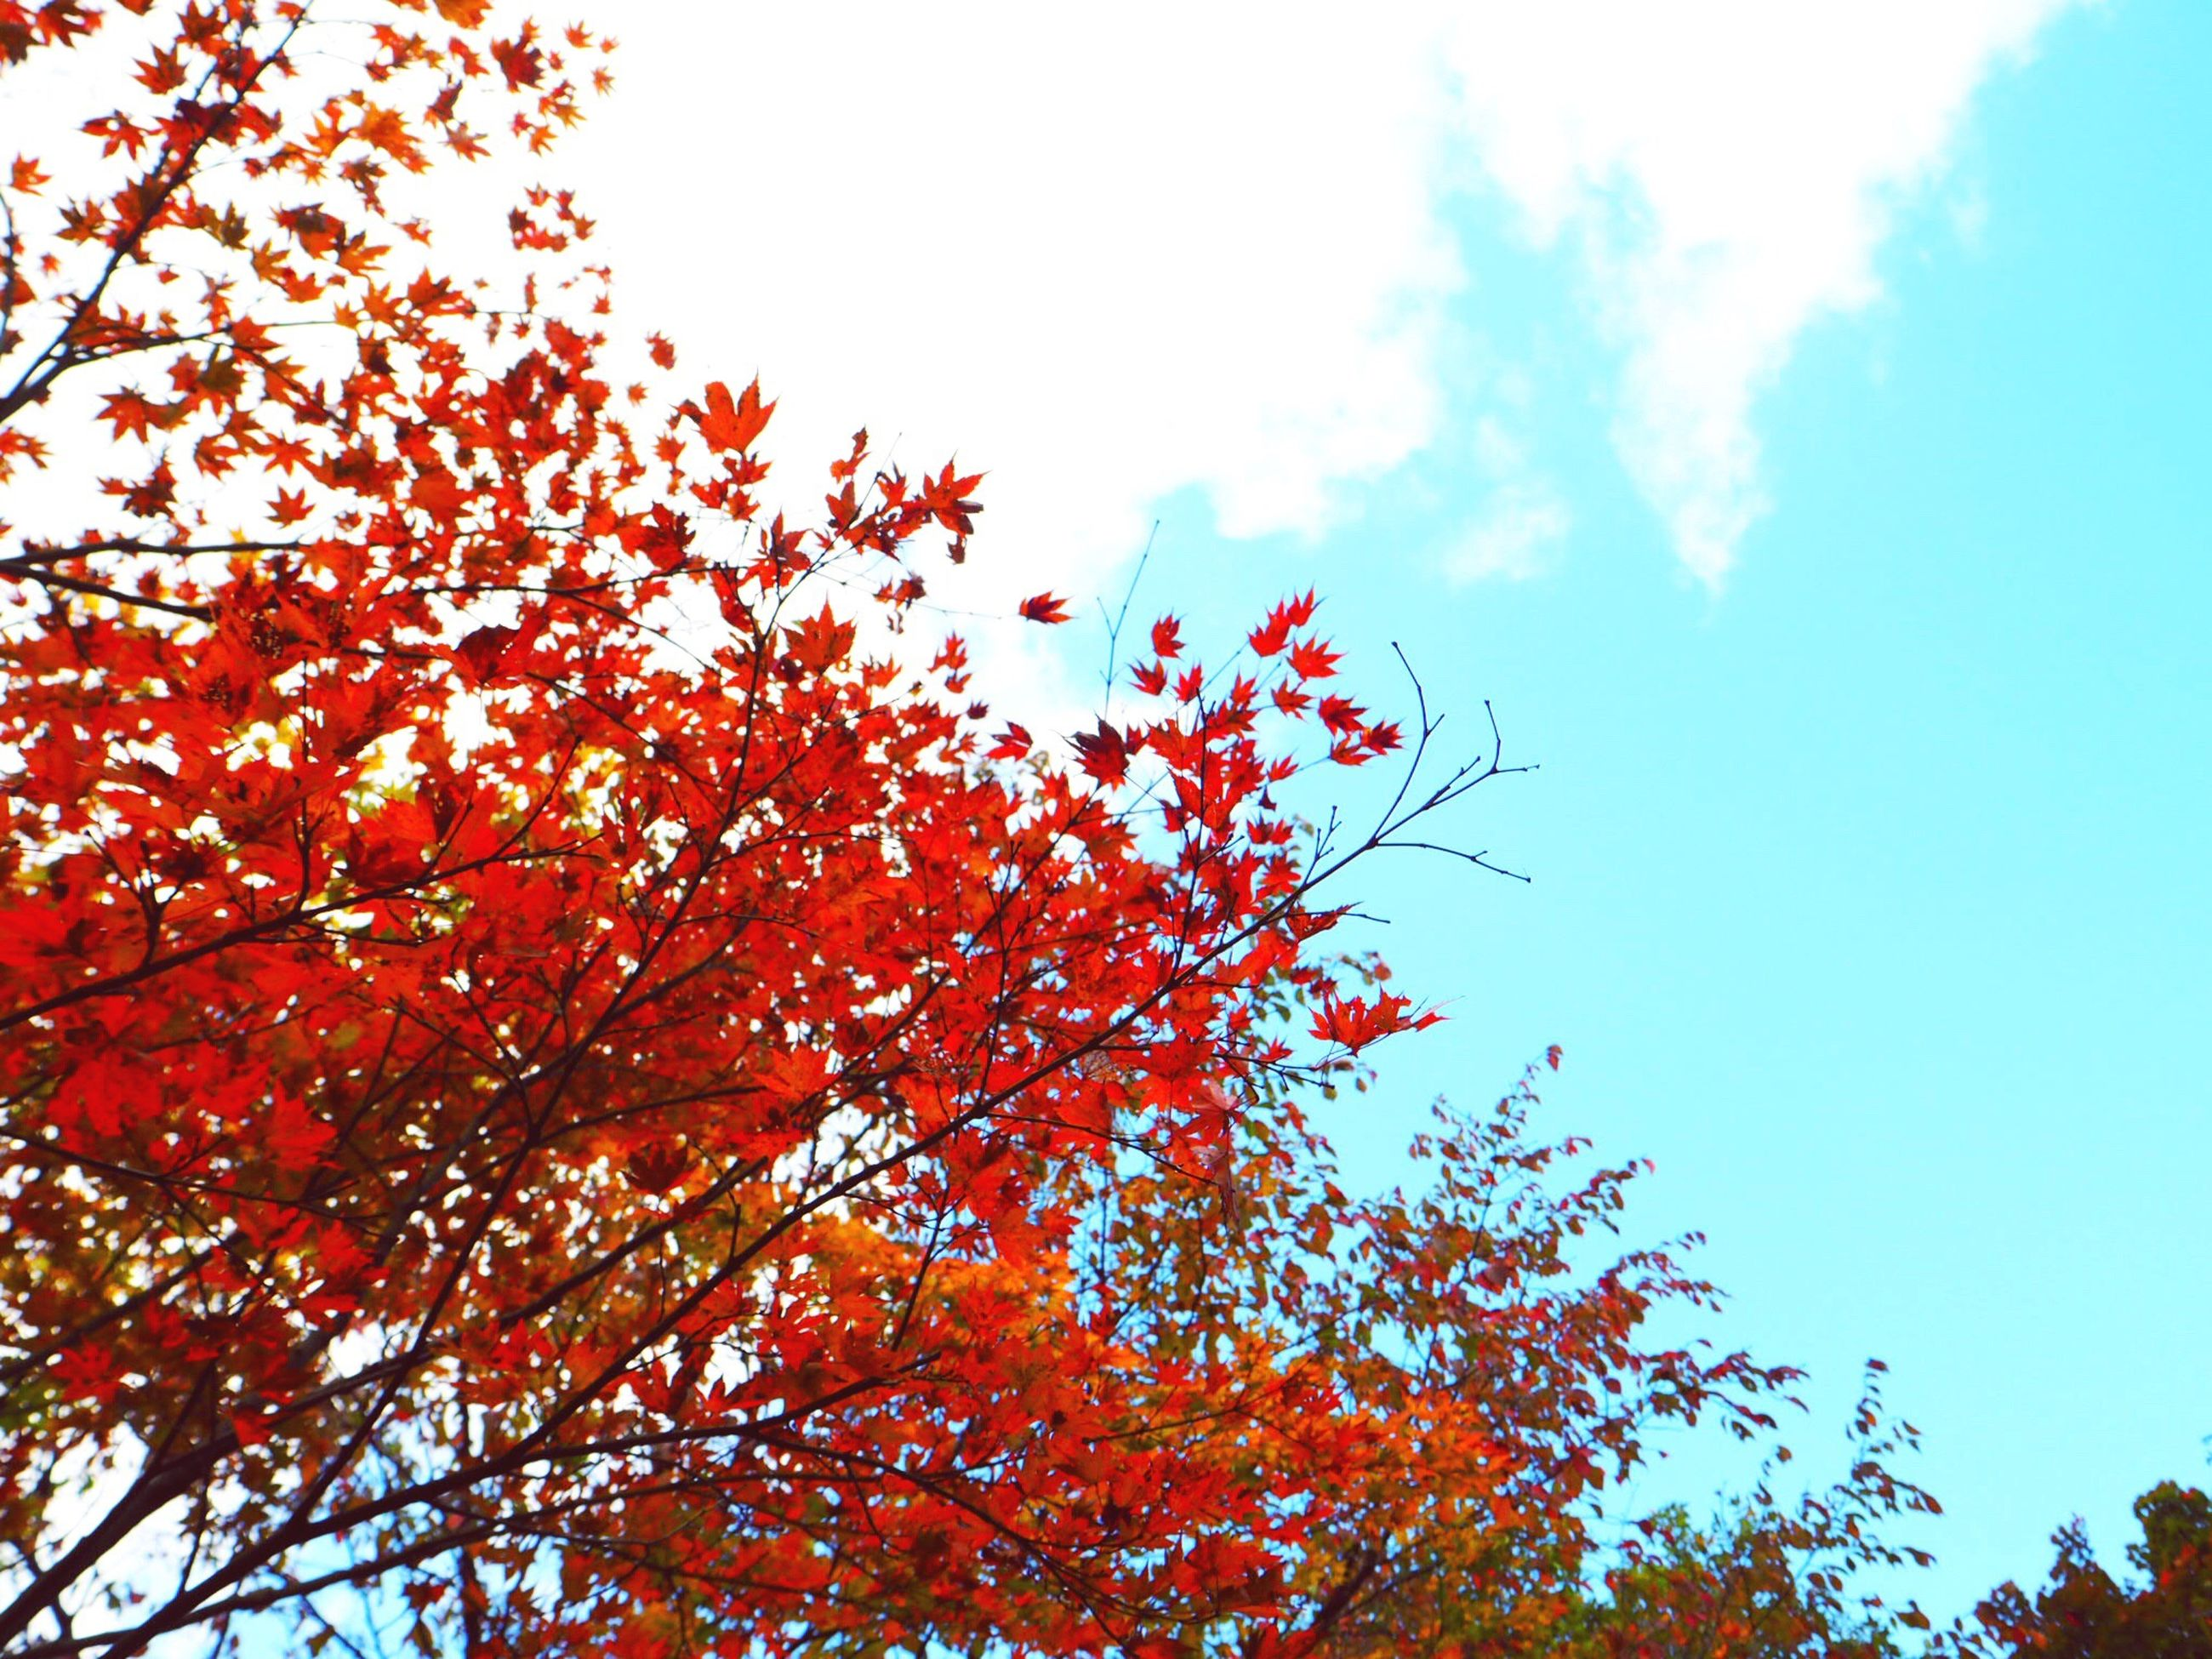 tree, low angle view, autumn, nature, branch, growth, beauty in nature, change, outdoors, day, no people, sky, red, leaf, freshness